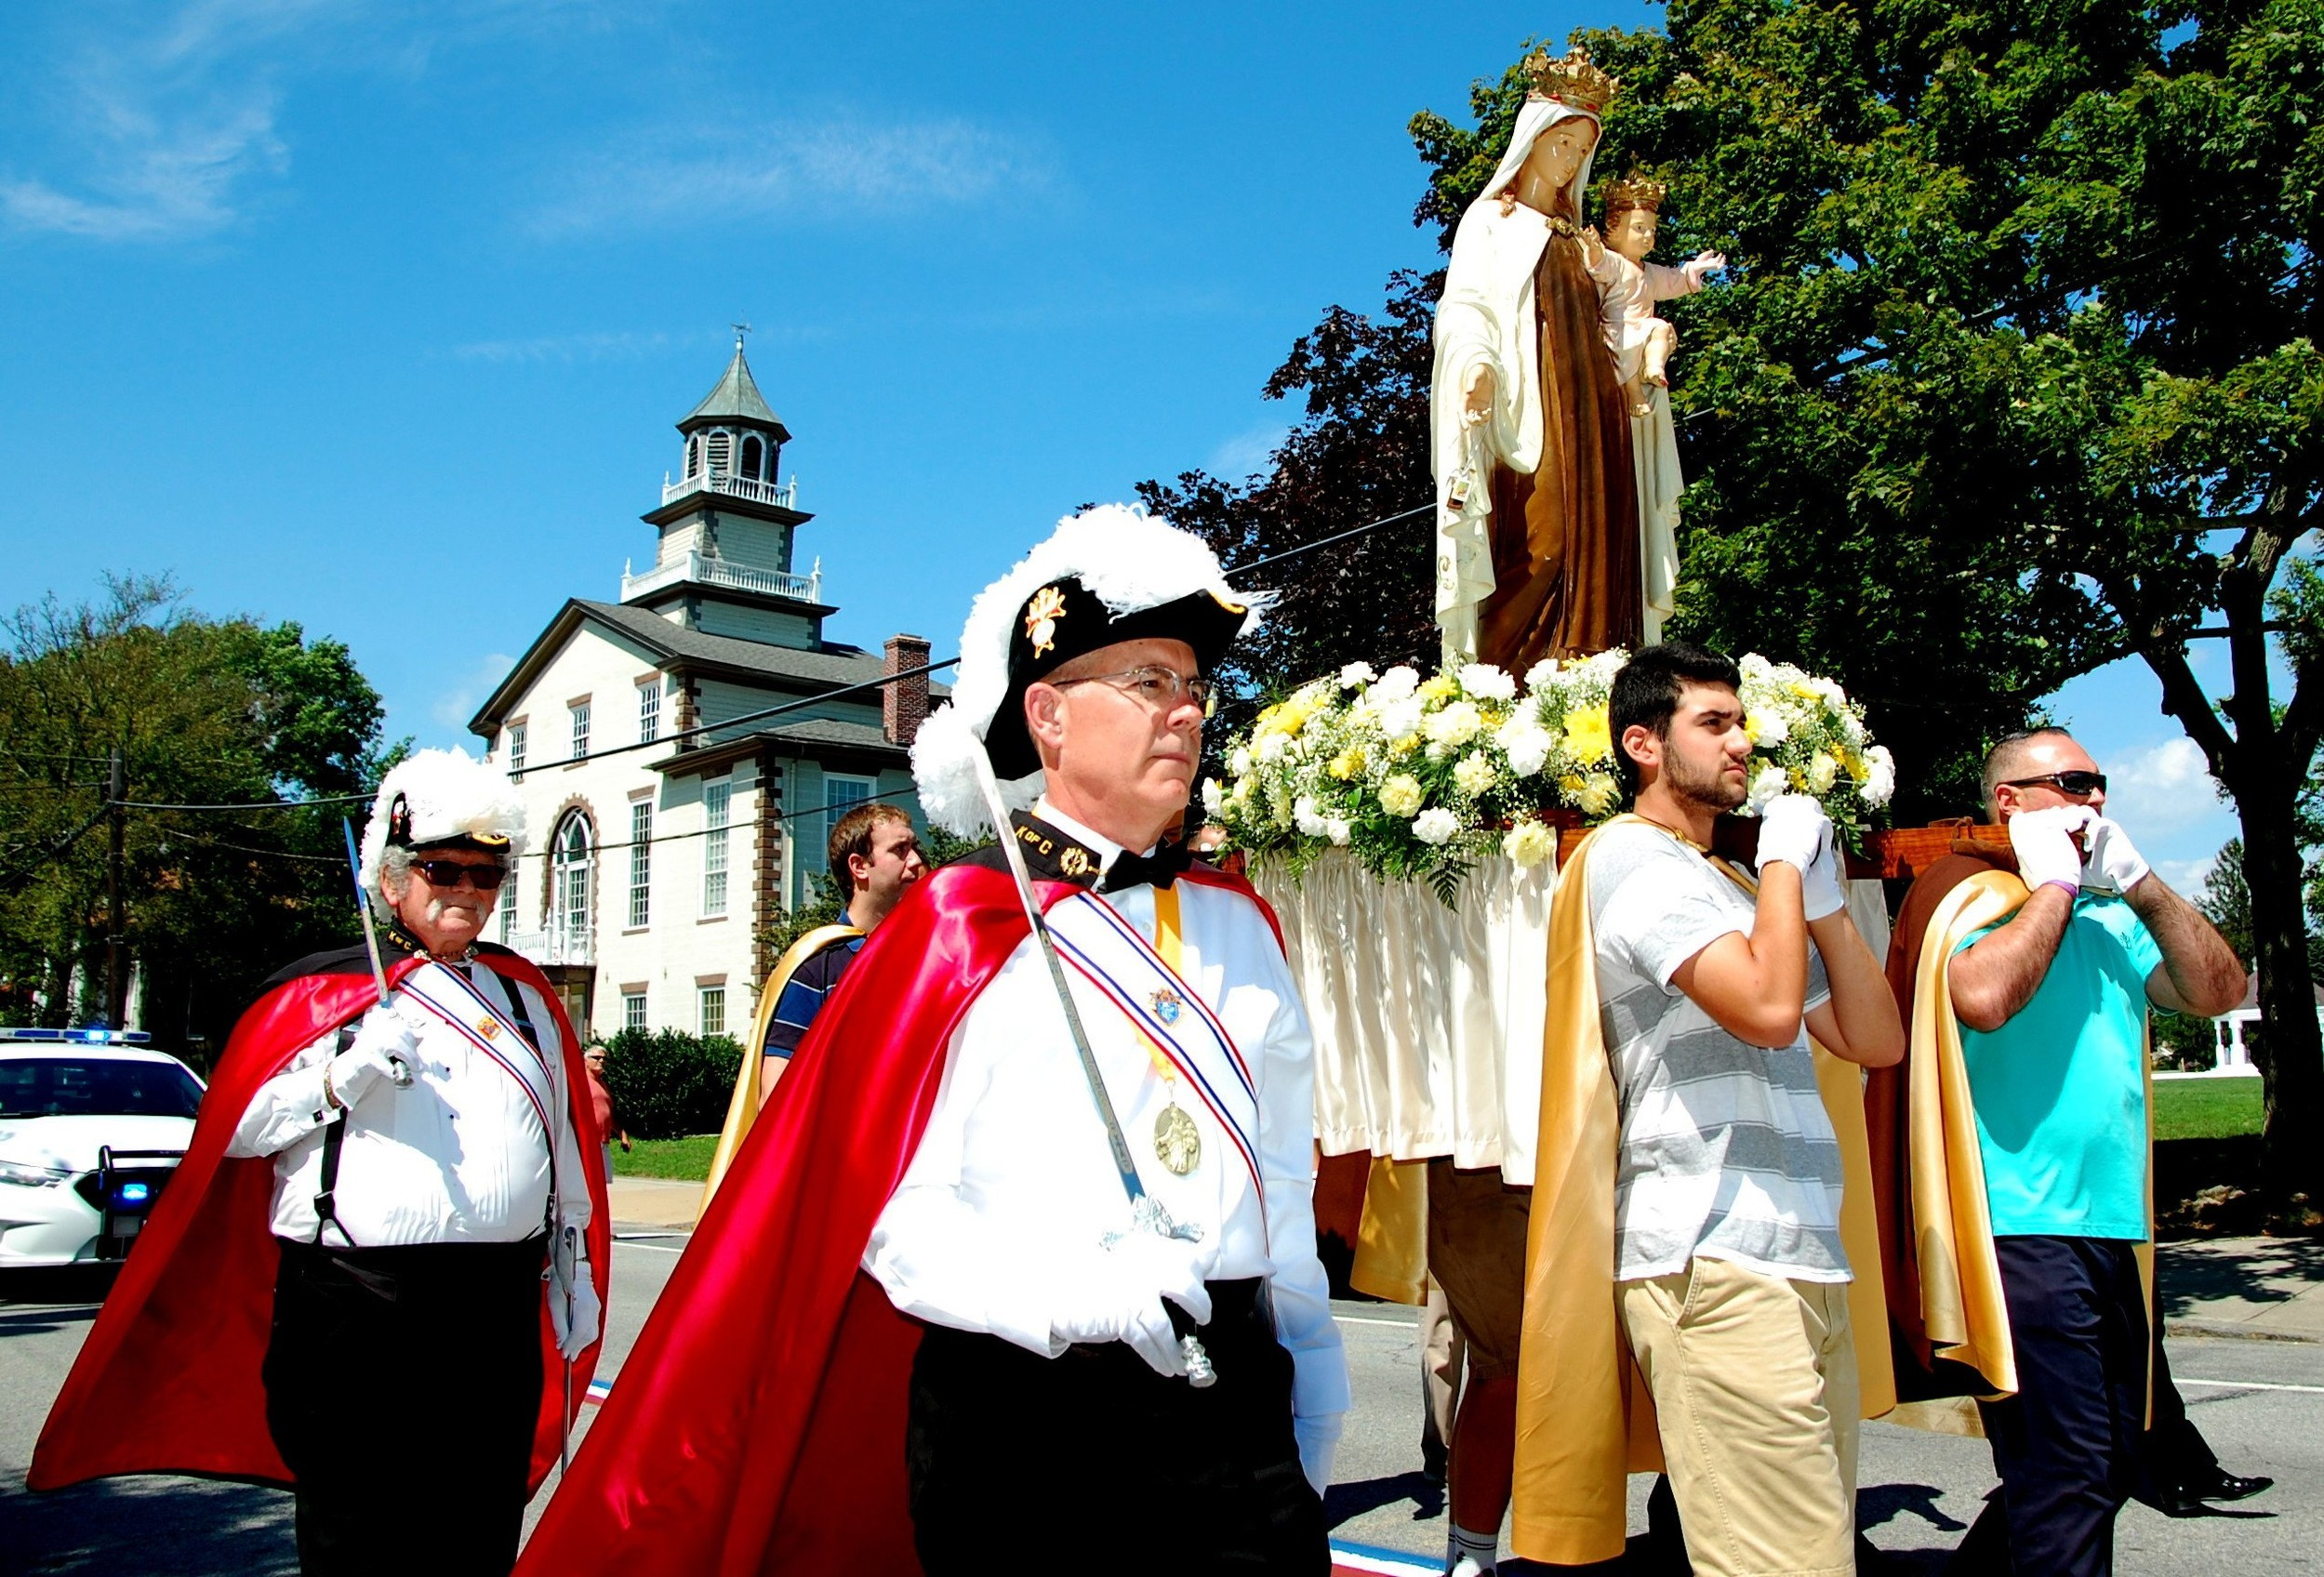 Feast Of Our Lady Of Mount Carmel Quotes: GALLERY: In 100th Year, OLMC Celebrates Annual Feast